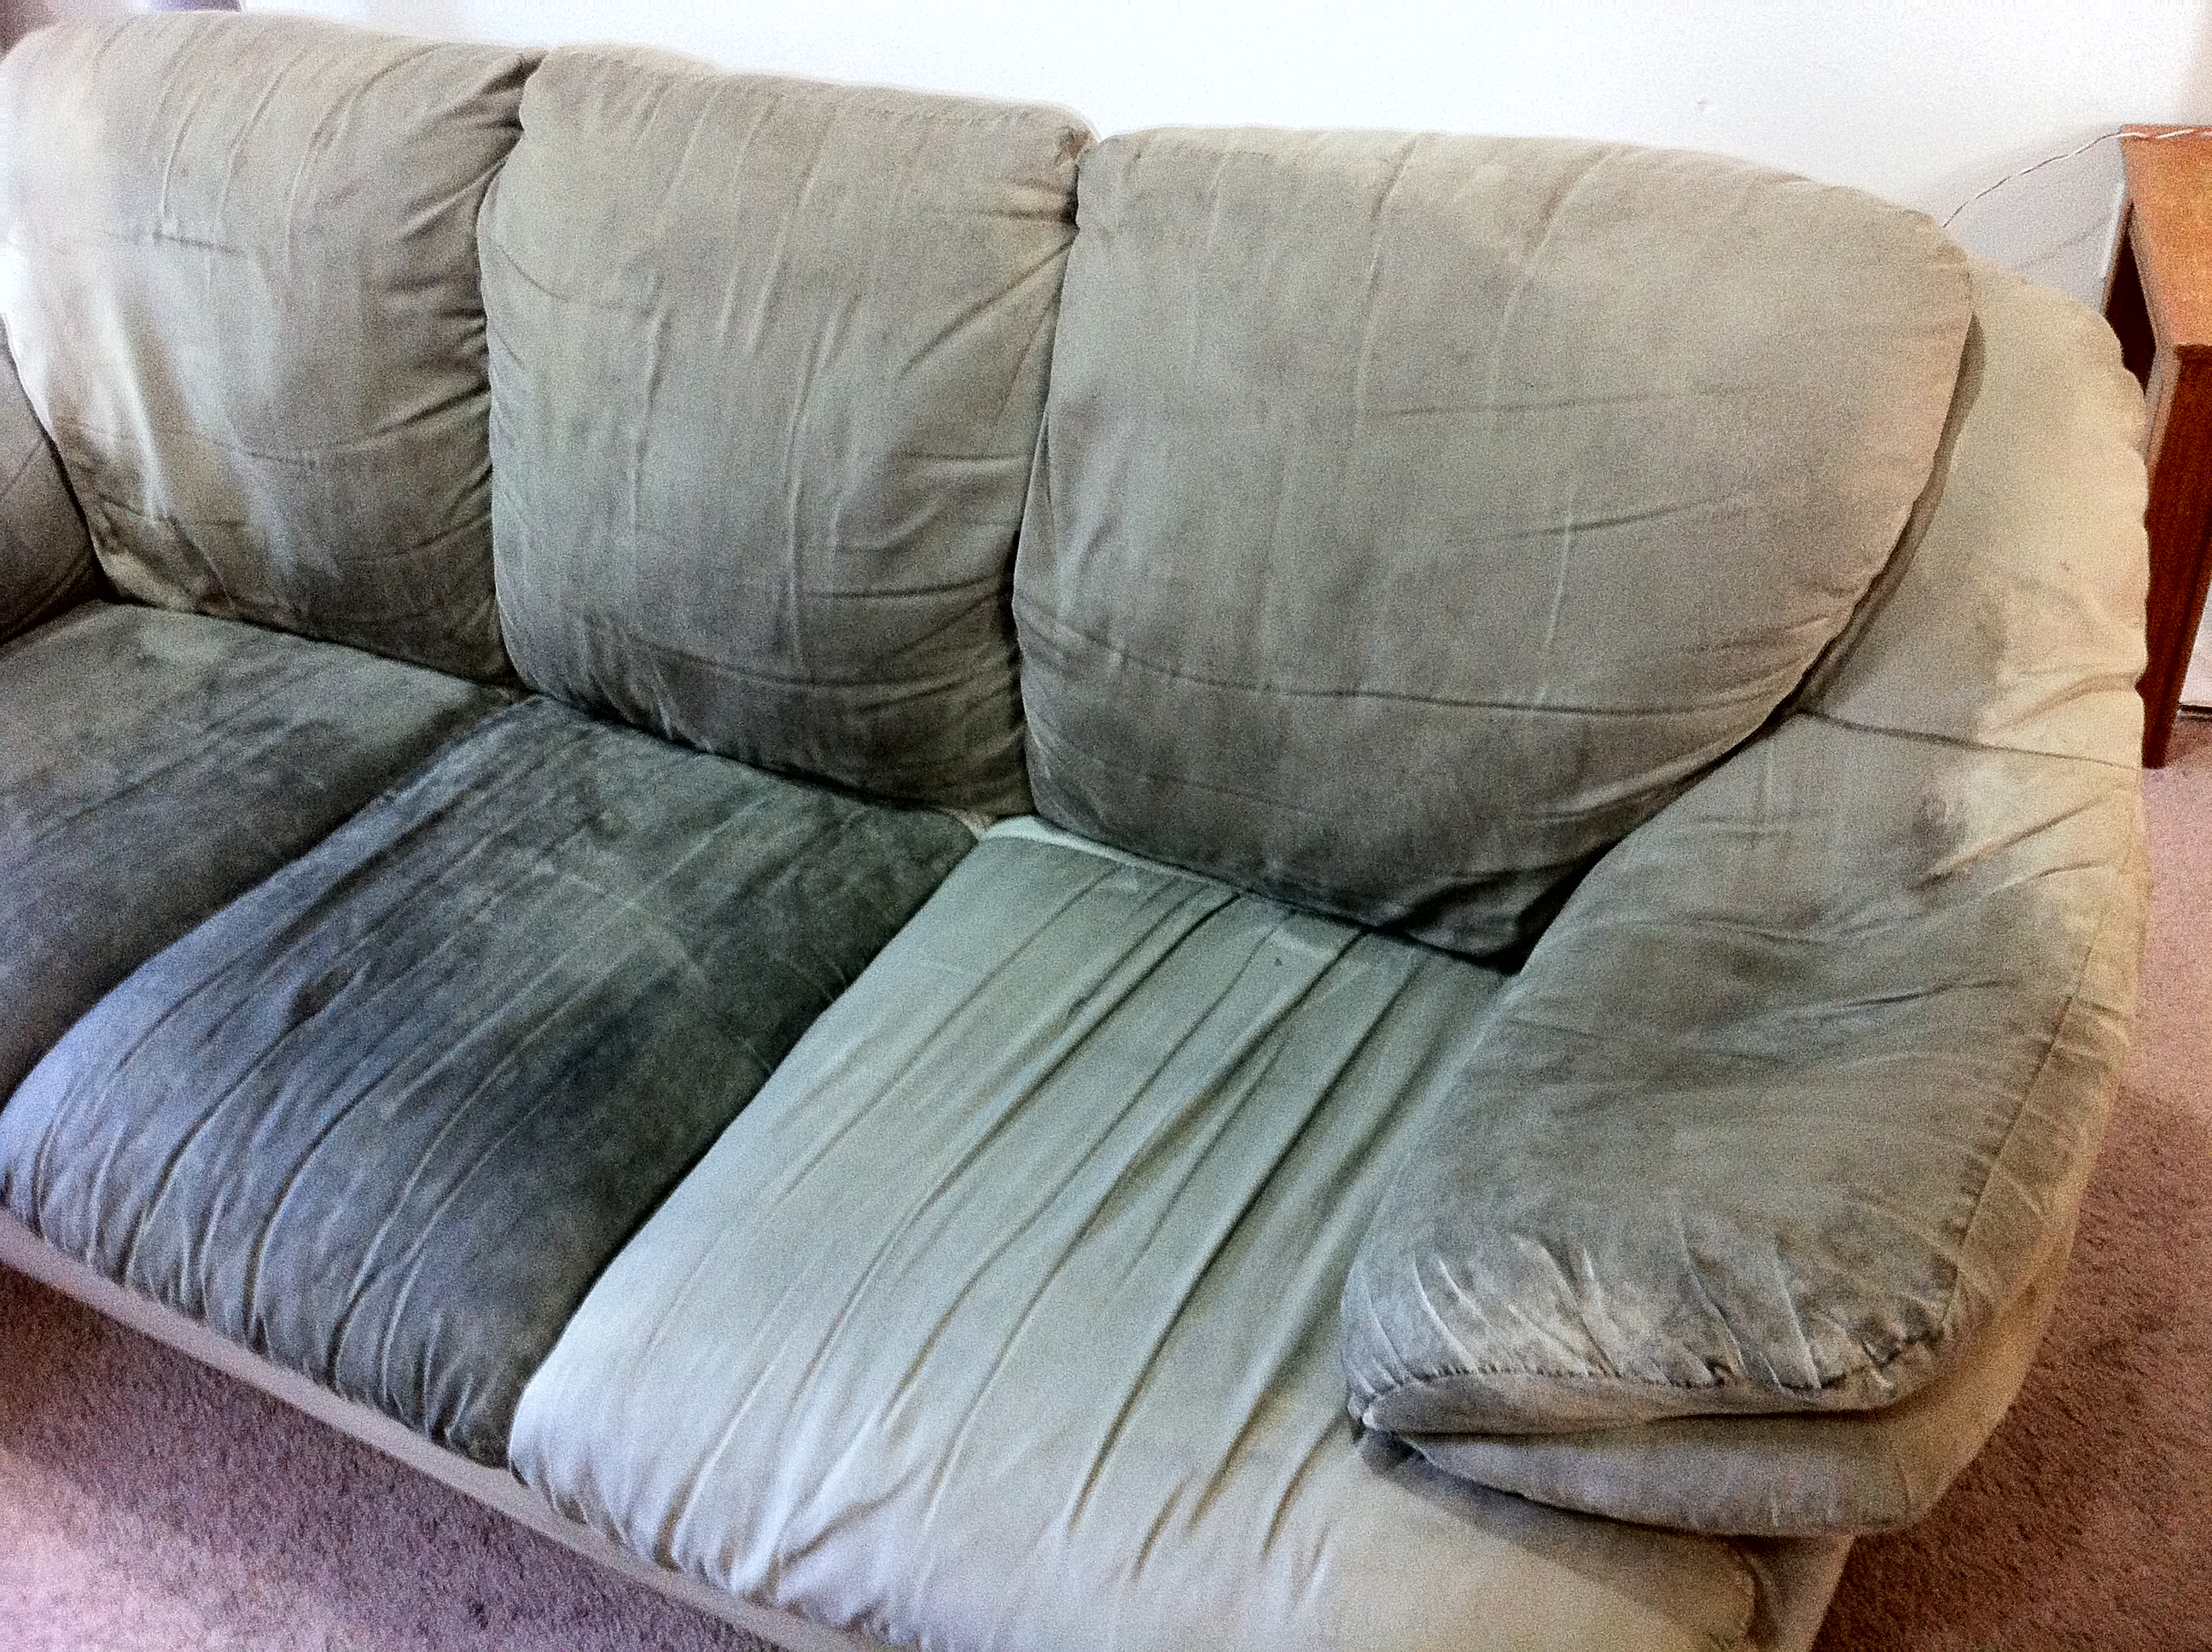 Furniture Upholstery Cleaning Portland Seans Carpet Care LLC - Sofa upholstery cleaning